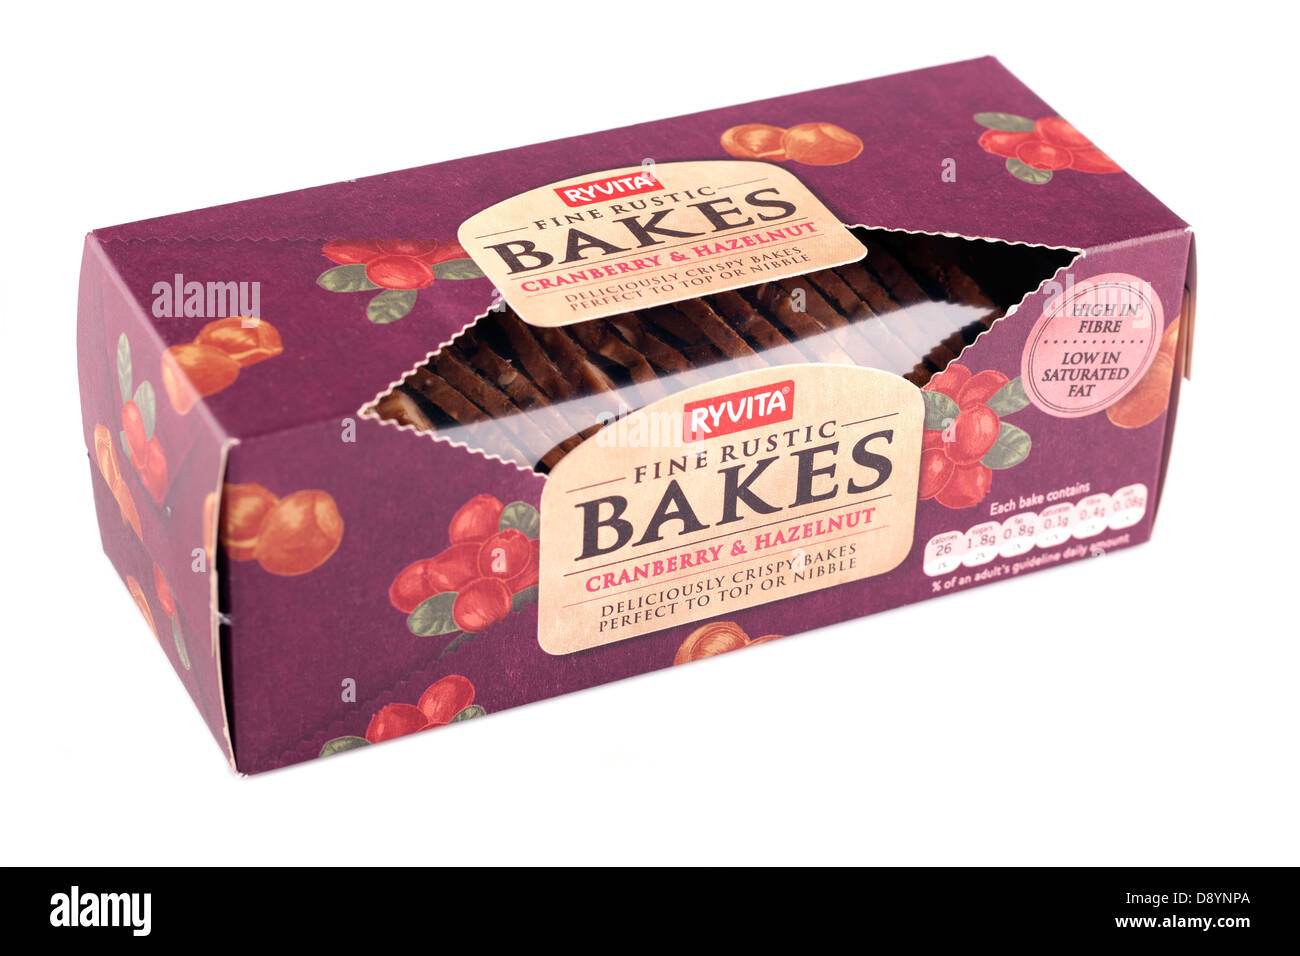 Box of Ryvita fine rustic bakes Cranberry and Hazelnut - Stock Image